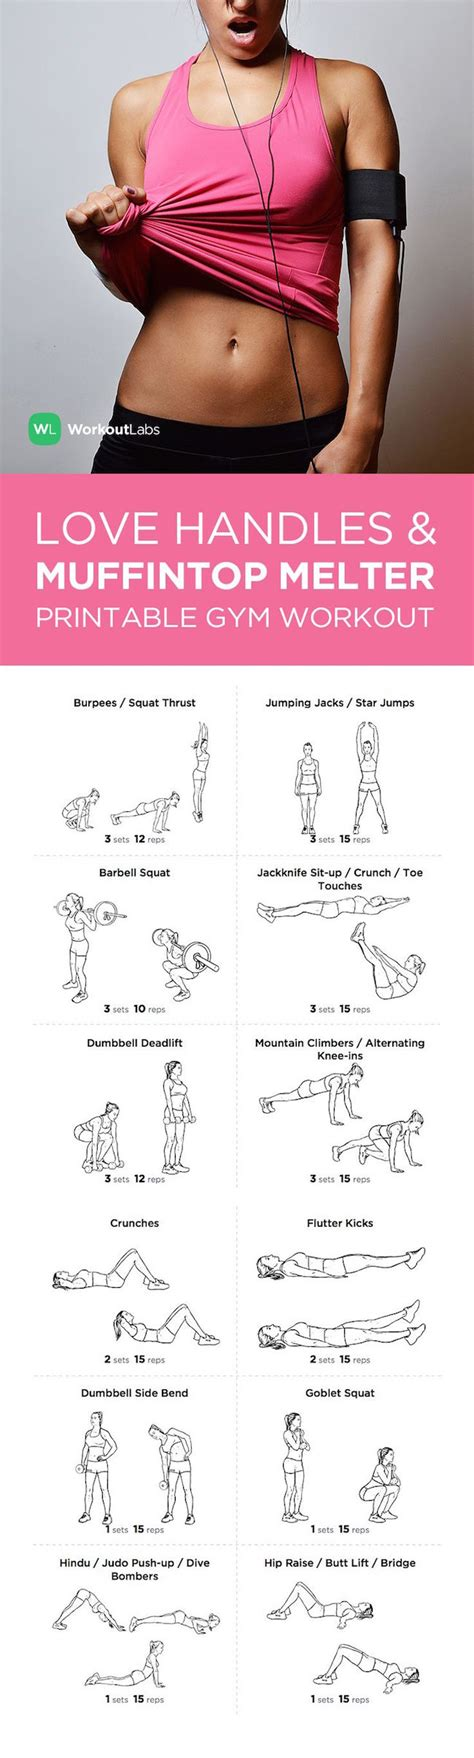 best exercise the 11 best muffin top exercises